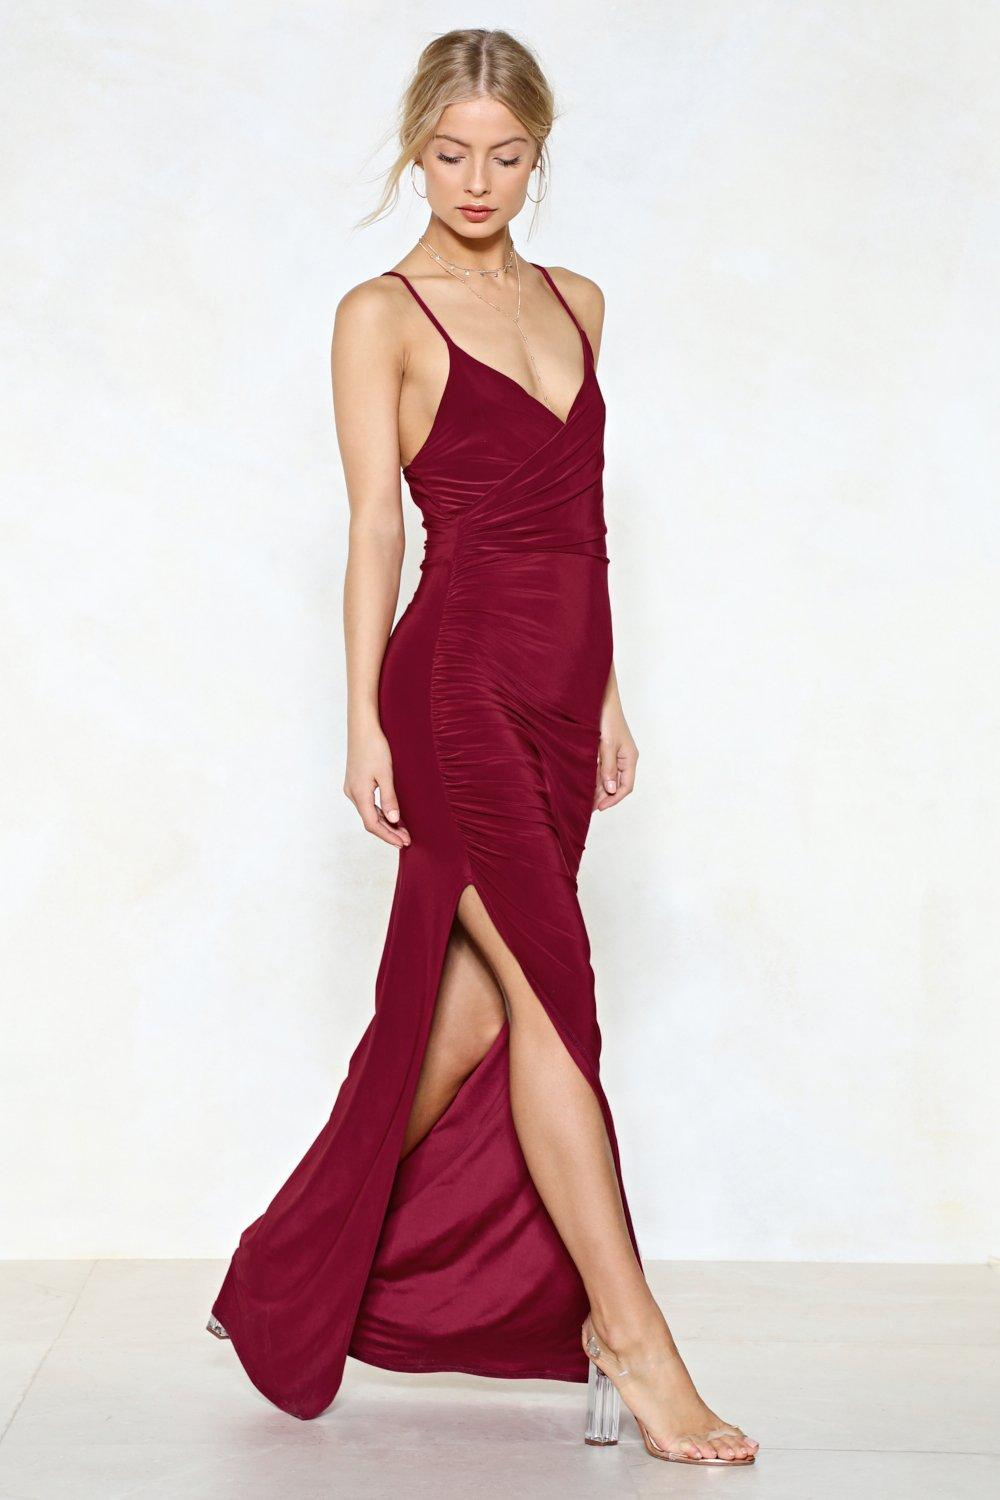 Slit or Miss Maxi Dress